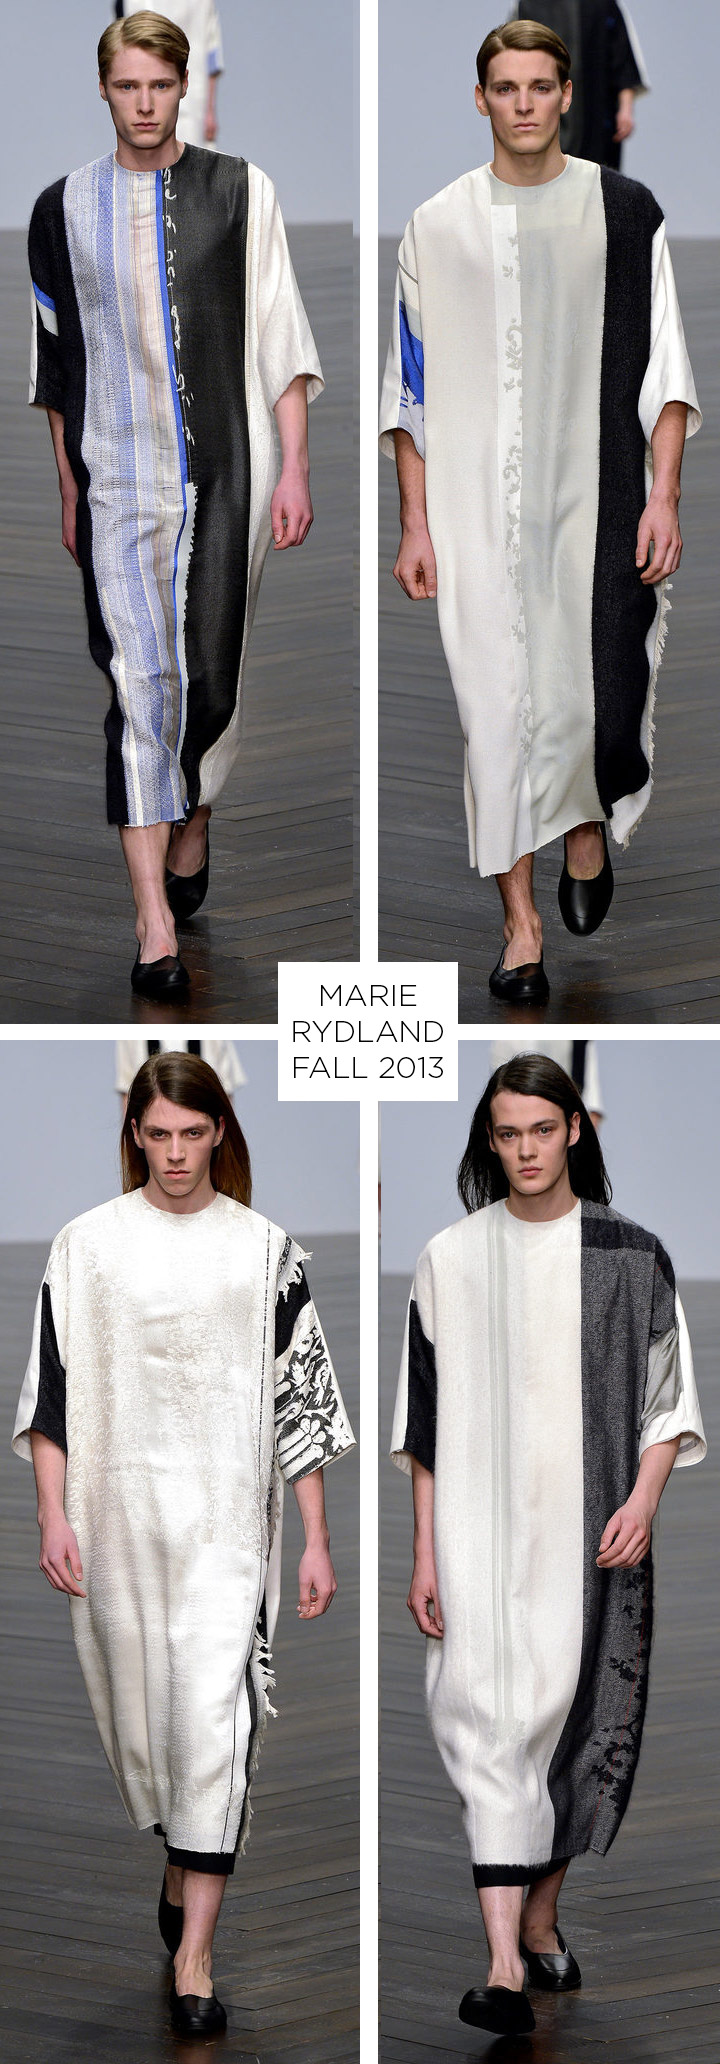 One to Watch: MARIE RYDLAND FALL 2013 | DeSmitten